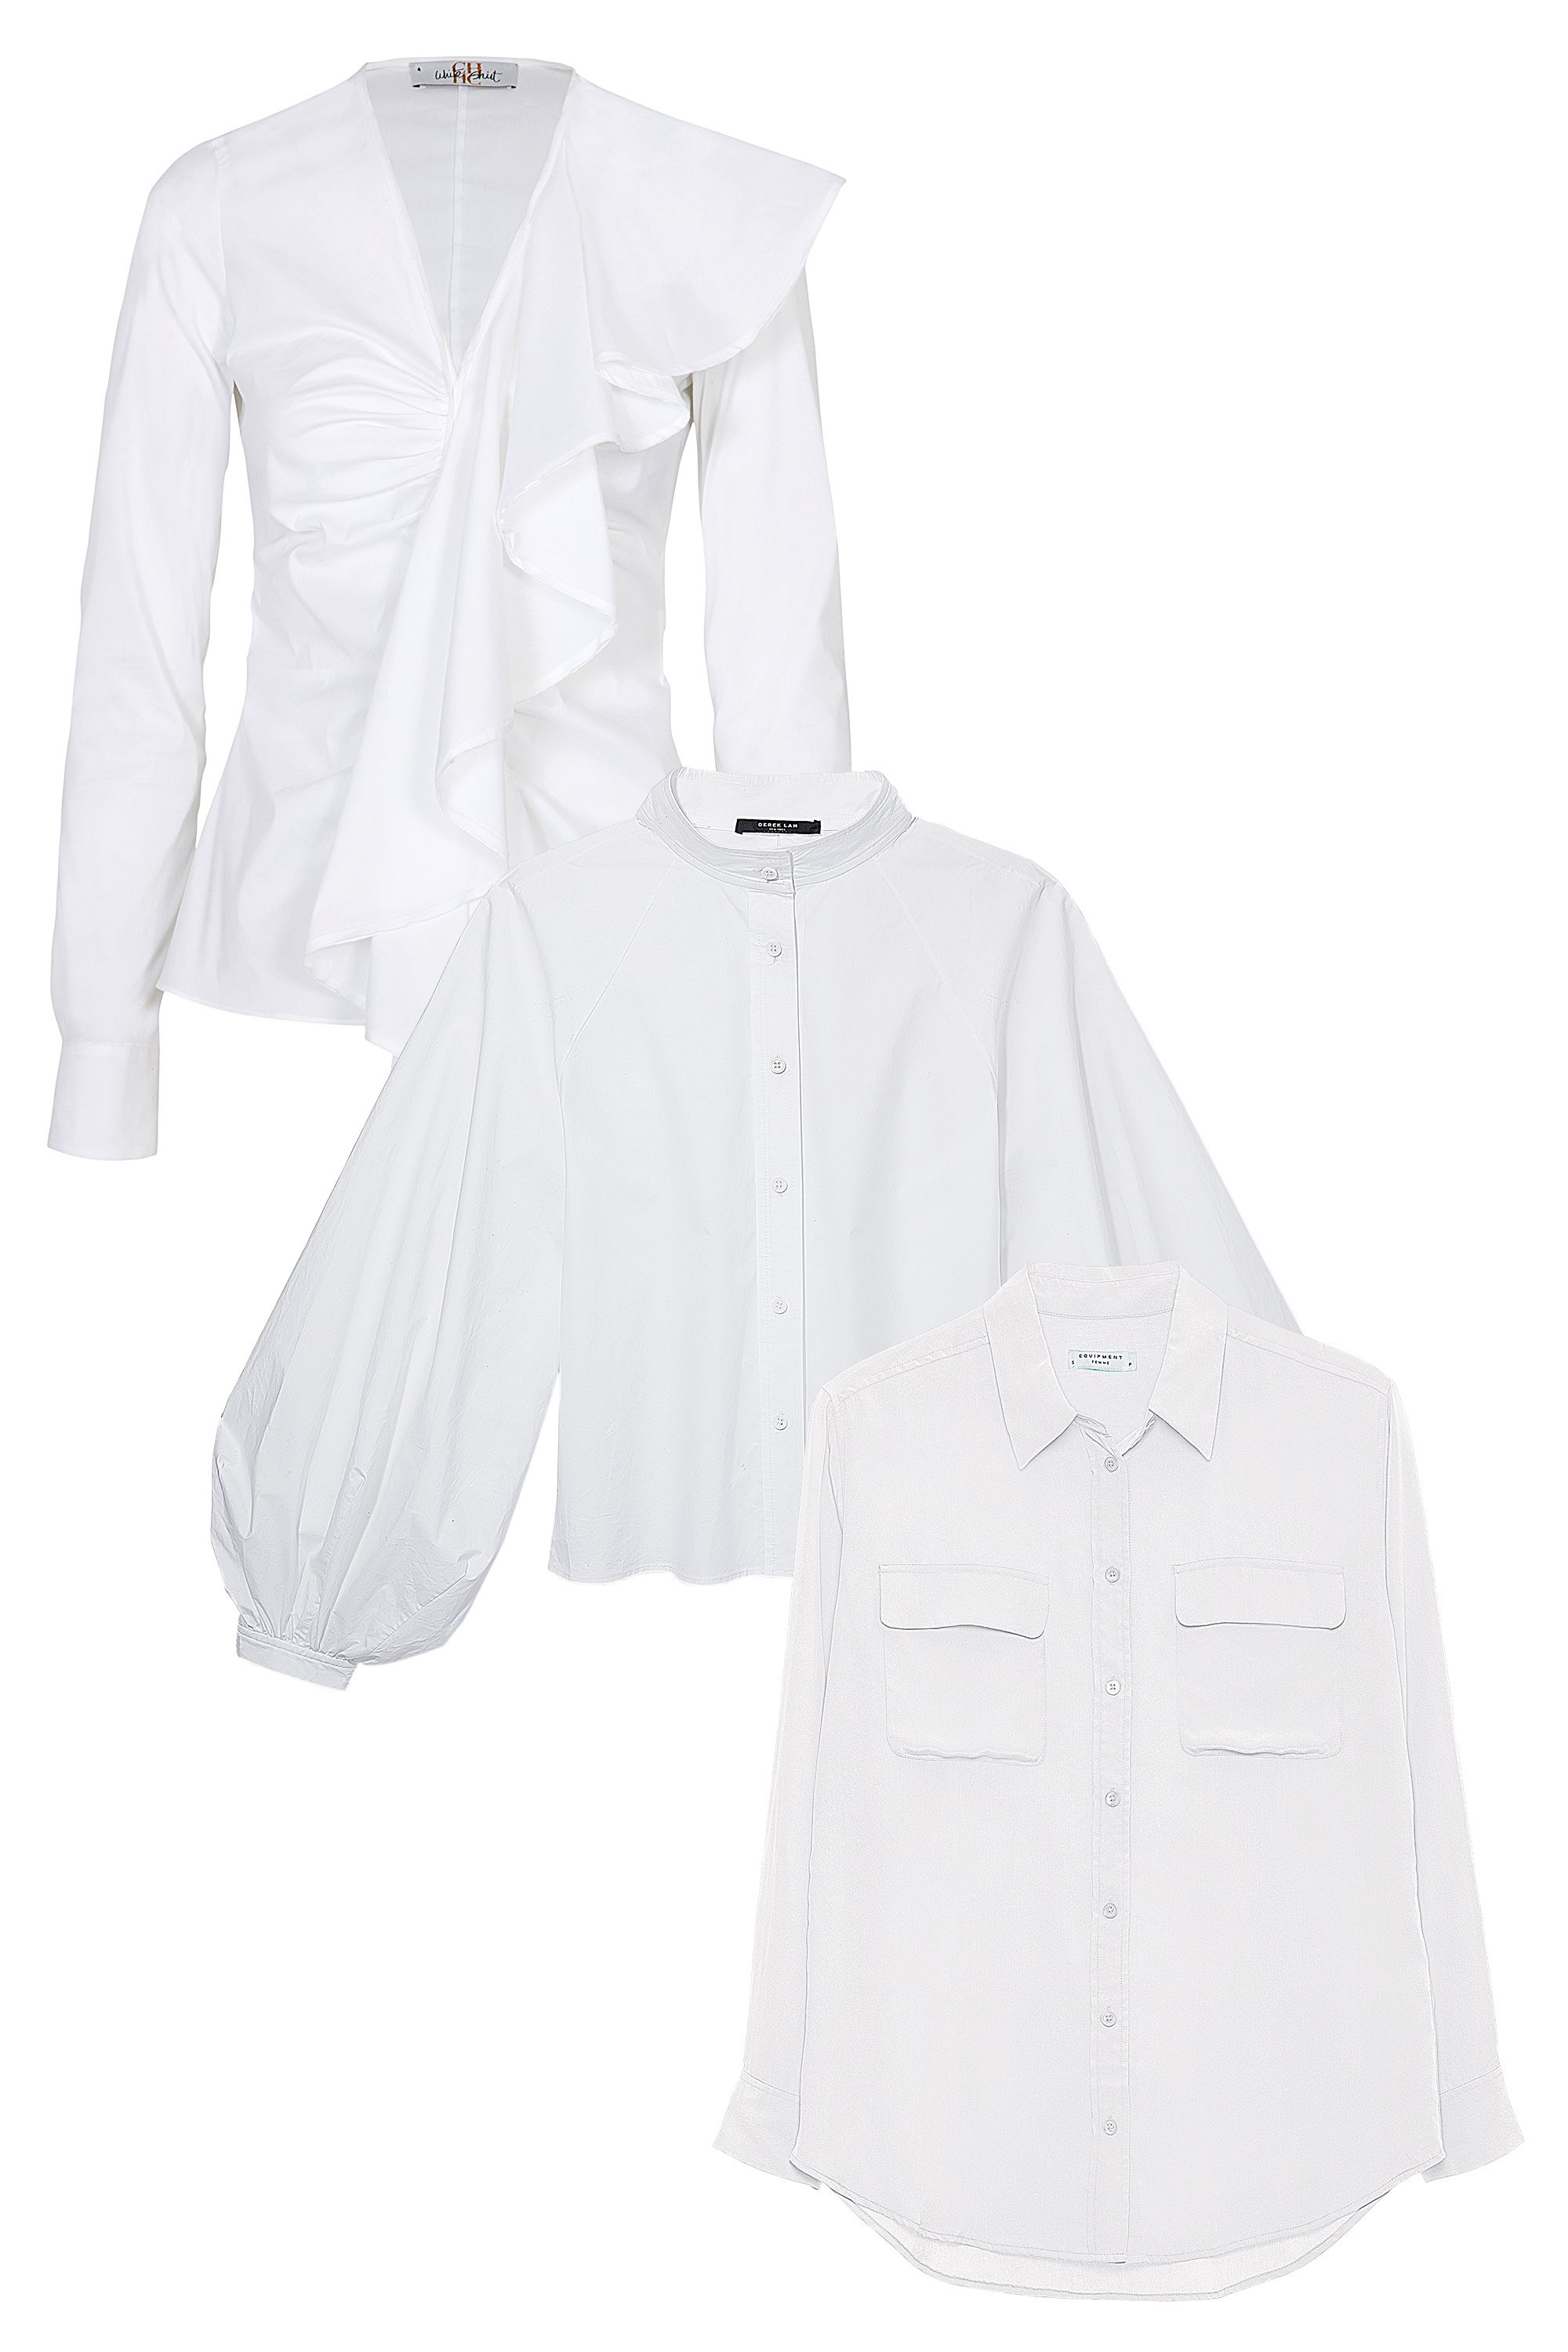 "<p><strong data-redactor-tag=""strong"" data-verified=""redactor"">From top to bottom: </strong><em data-redactor-tag=""em"" data-verified=""redactor"">Cotton shirt, CH Carolina Herrera, $365, visit carolinaherrera.com. Linen-blend blouse, Derek Lam, $1,195, at Derek Lam, NYC.  Silk blouse, Equipment, $218, visit equipmentfr.com</em><em data-redactor-tag=""em"" data-verified=""redactor""></em></p>"